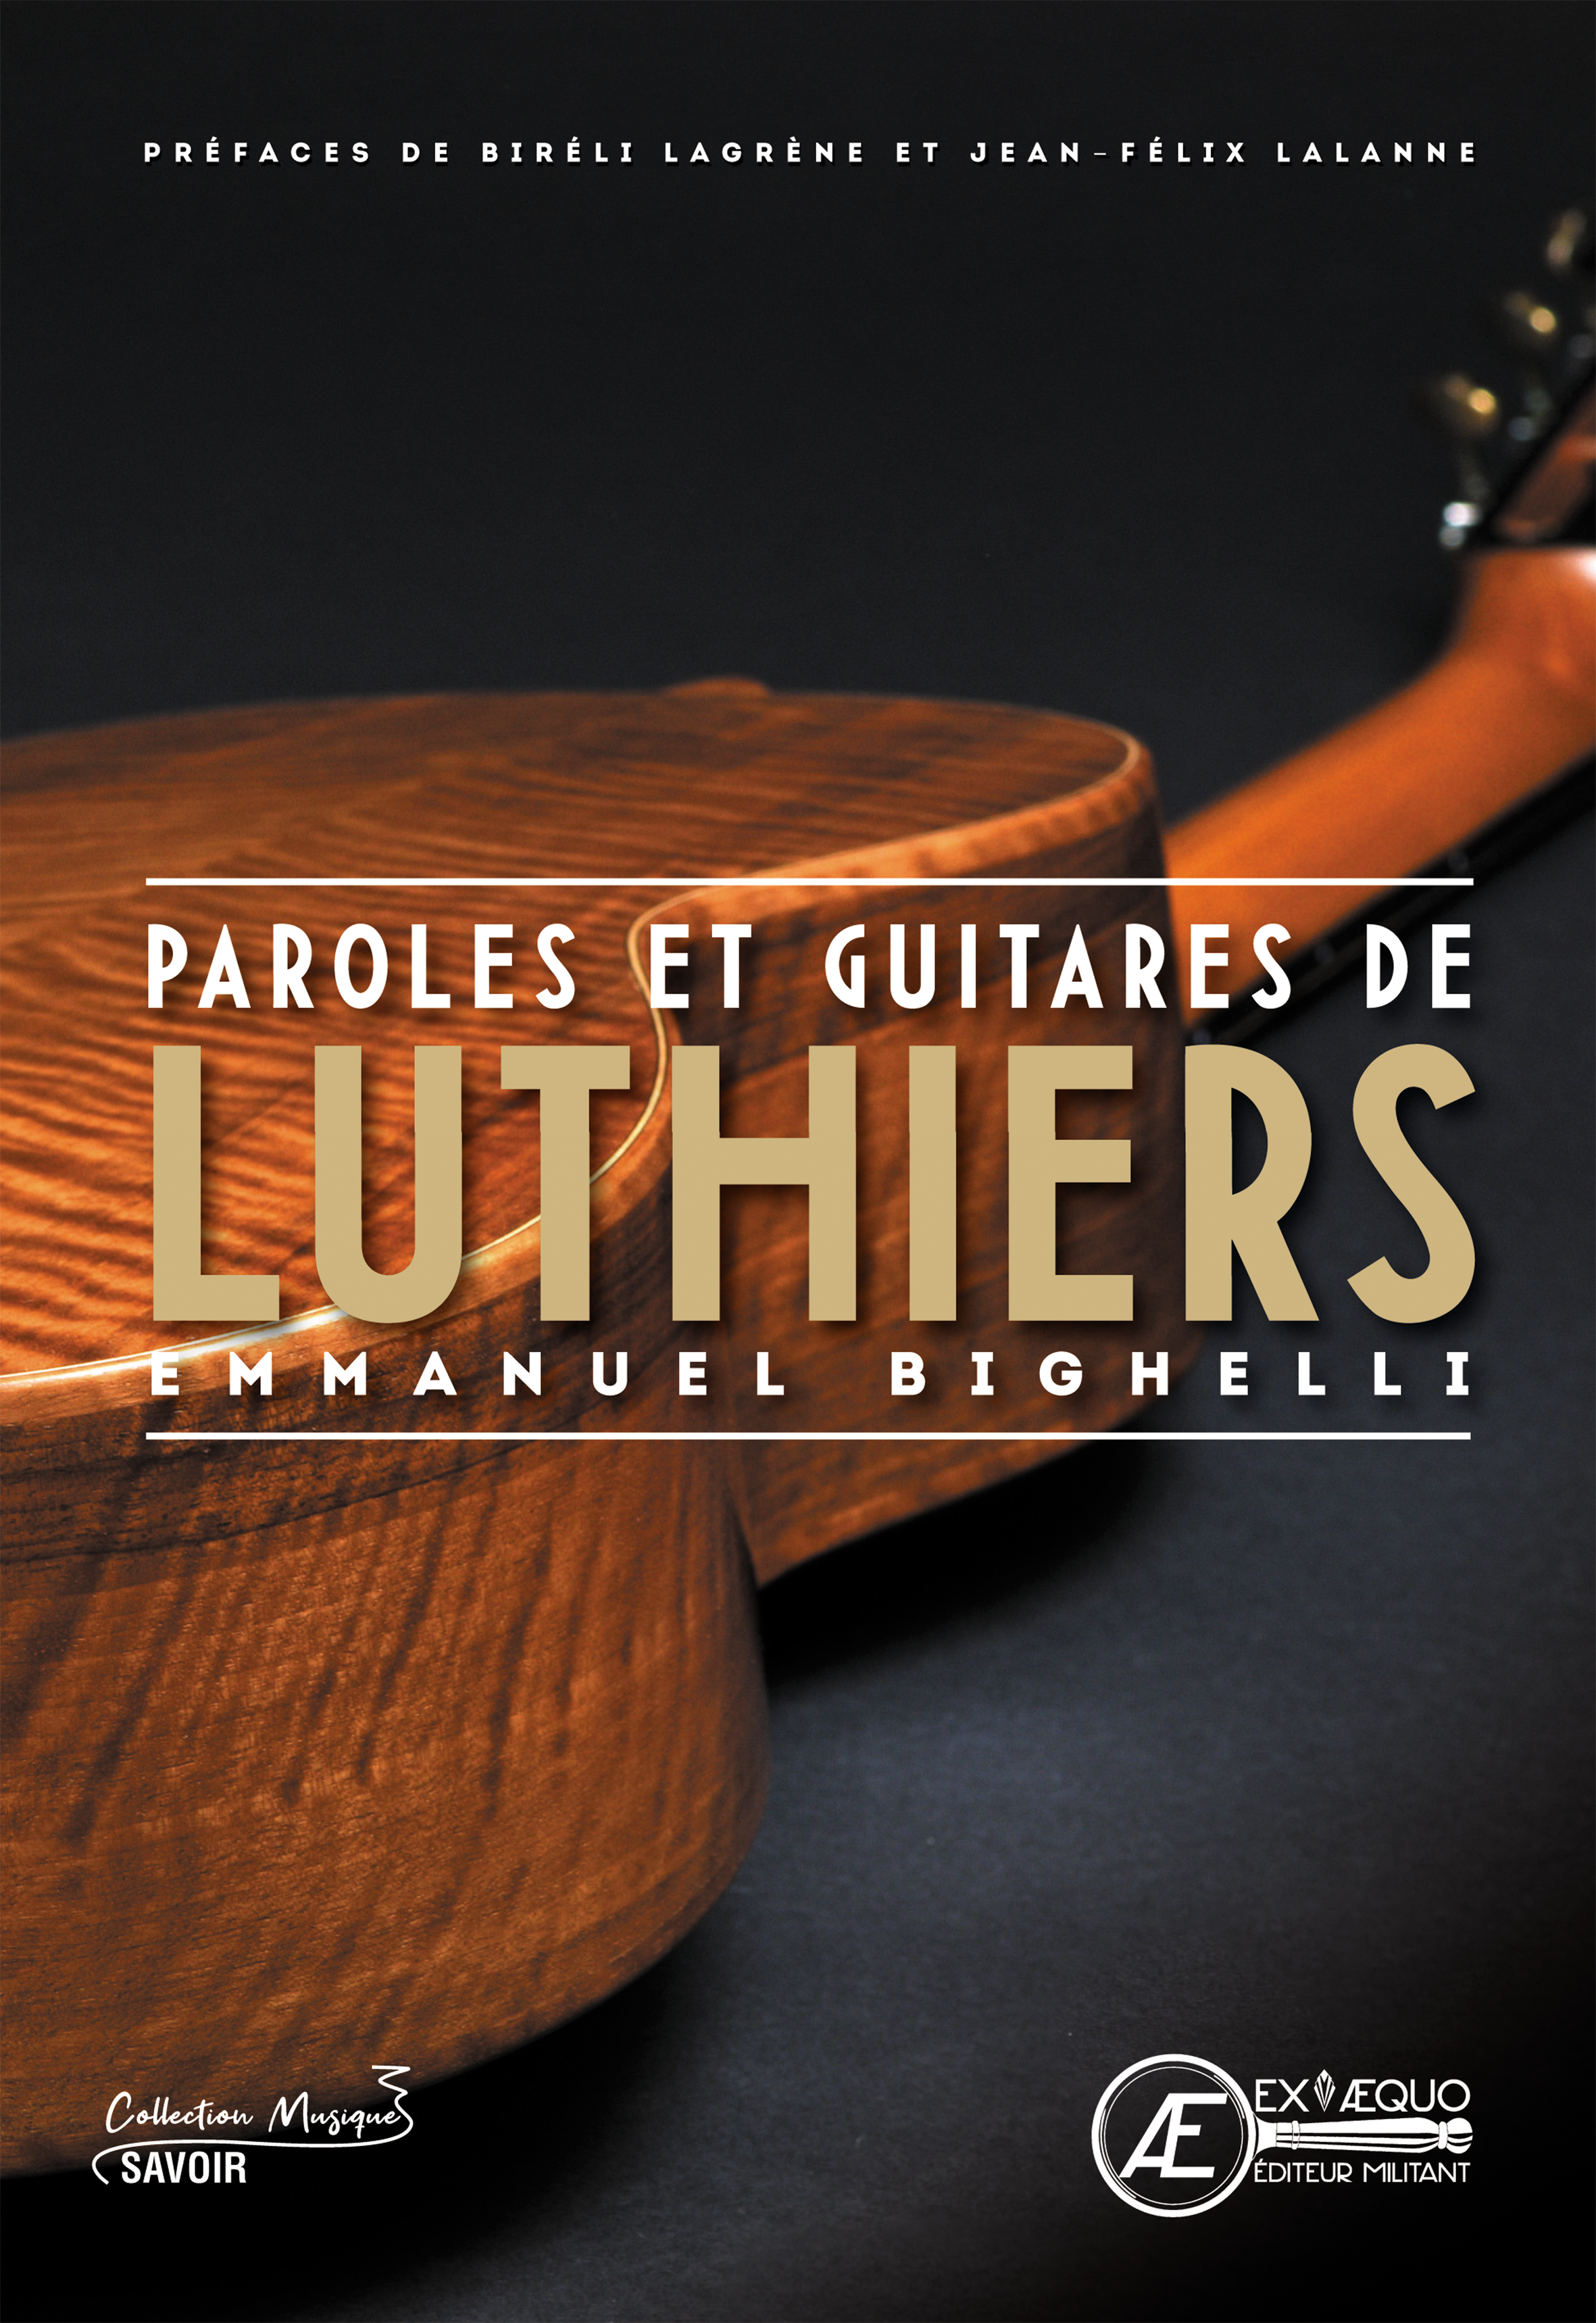 Paroles et guitares de luthiers-Emmanuel Bighelli-ÉDITIONS EX ÆQUO